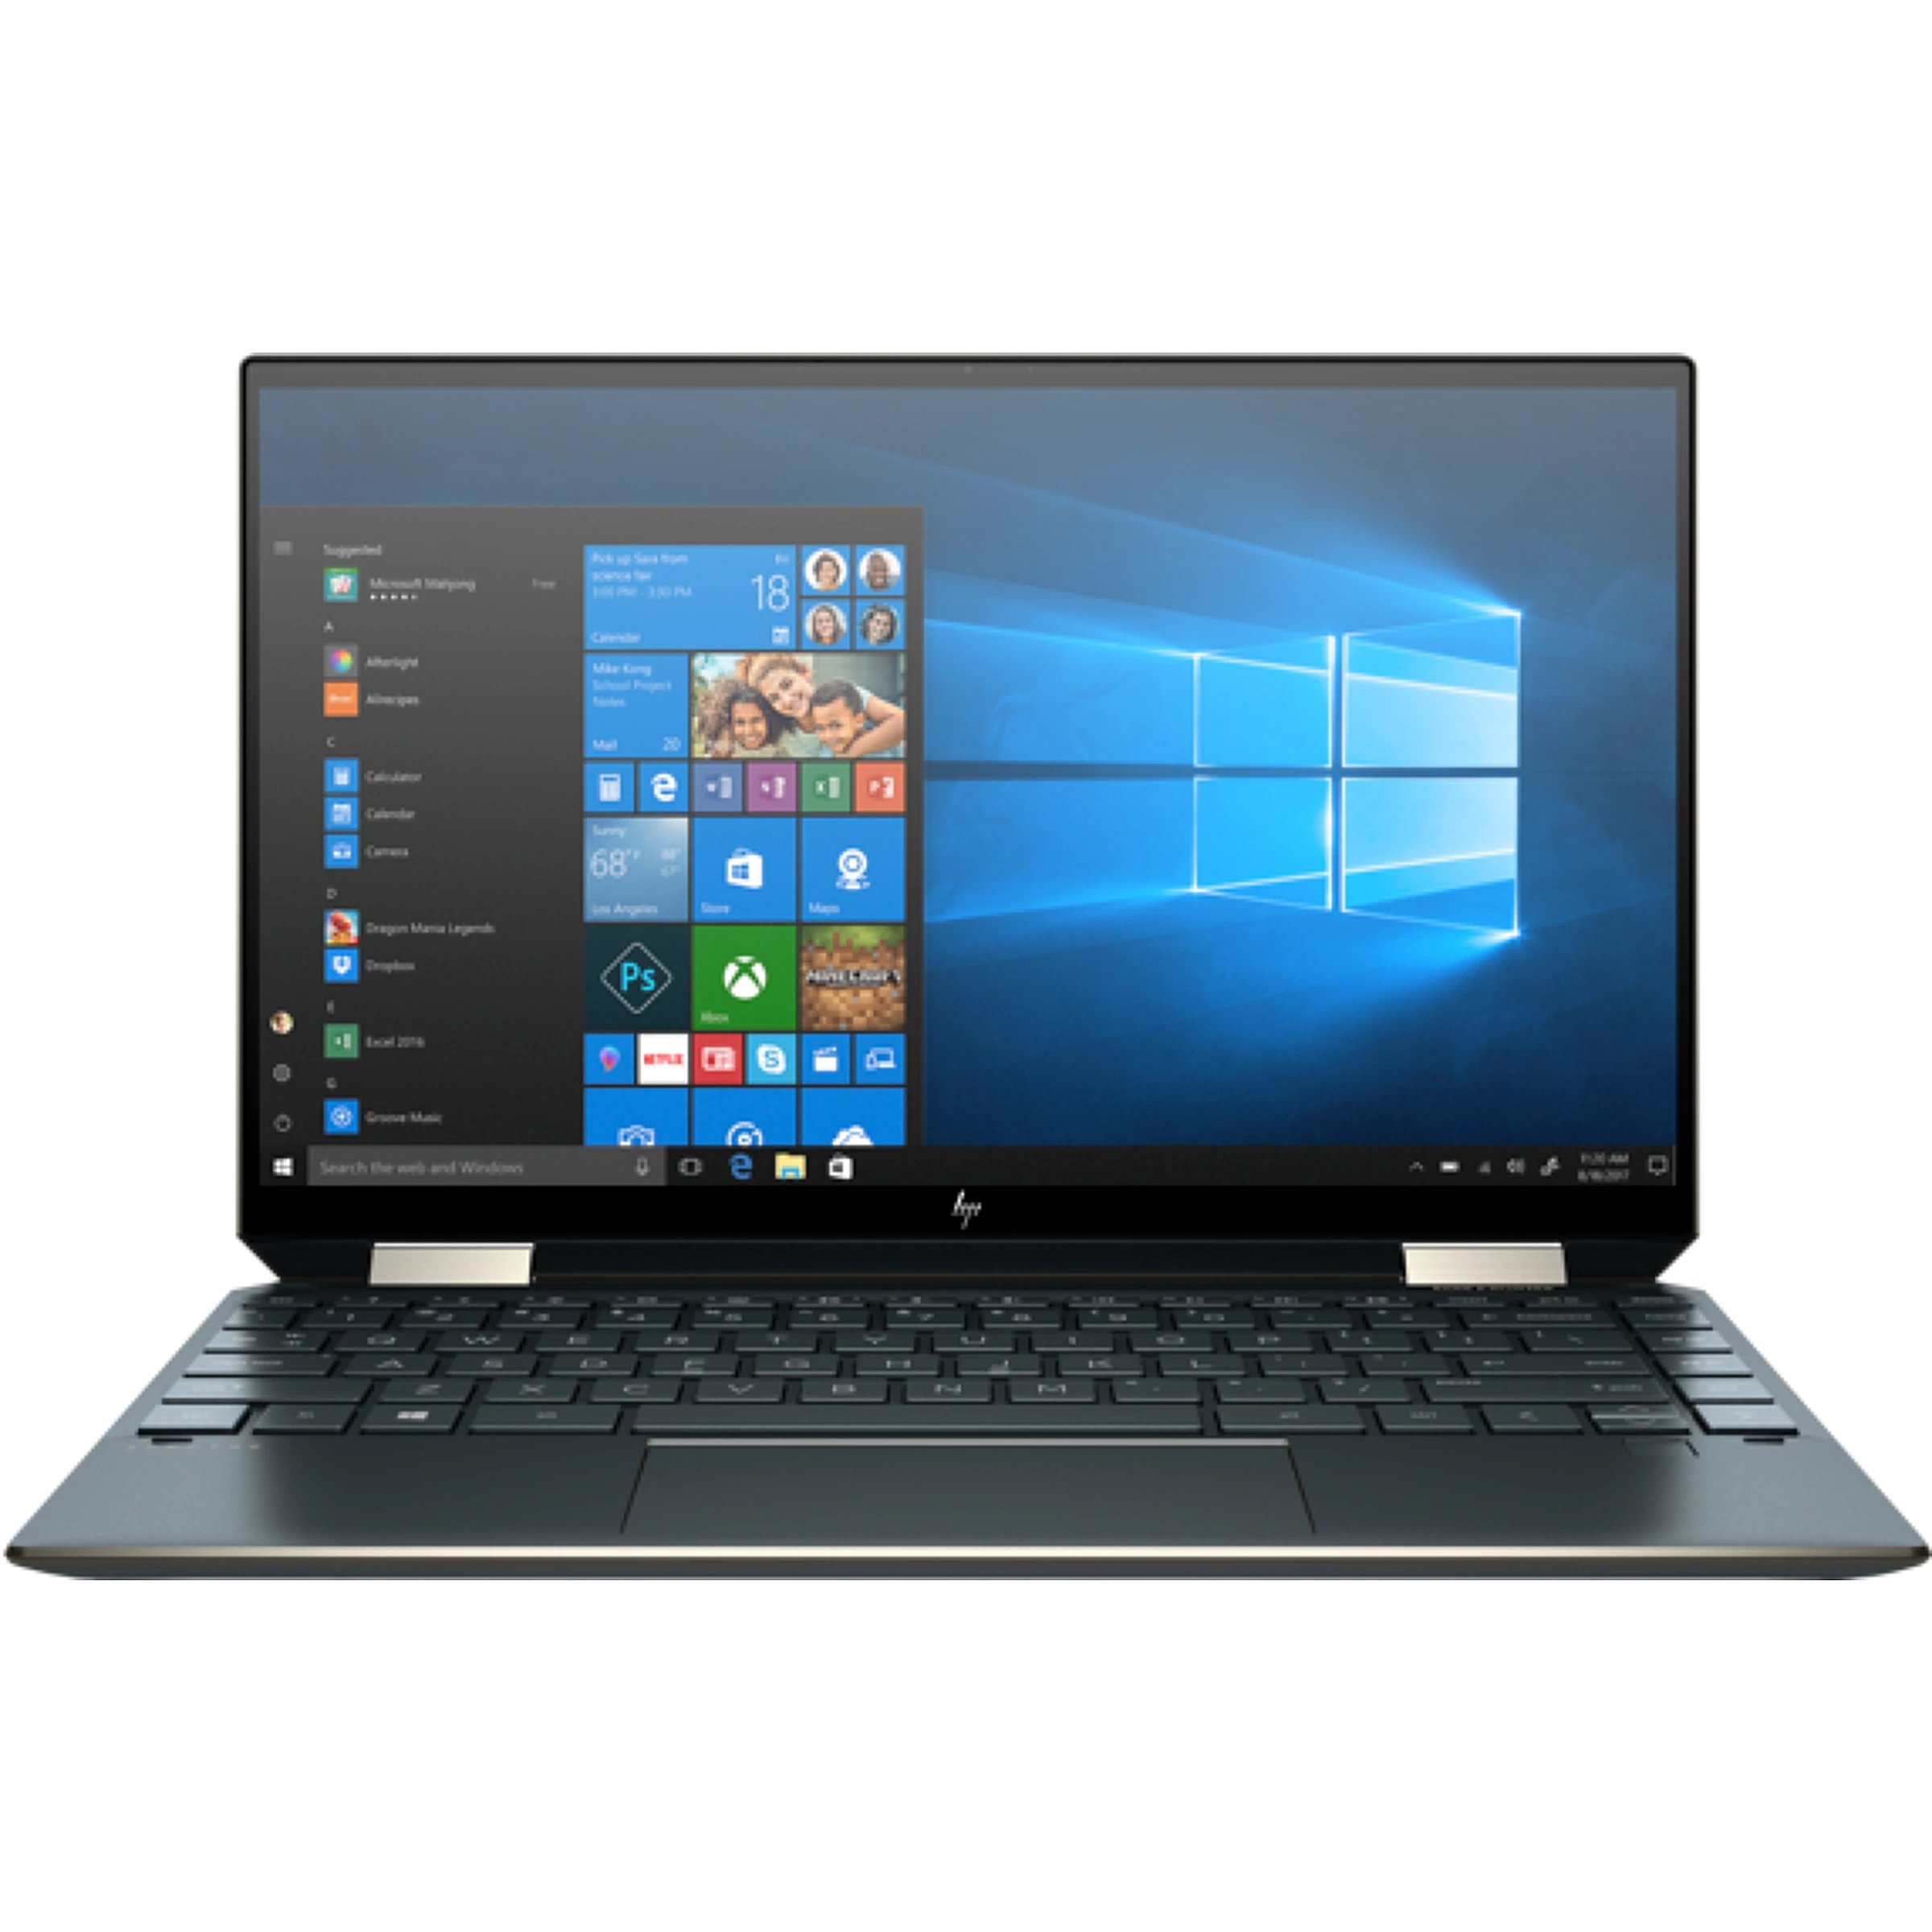 Hewlett Packard Spectre x360 13 Nightfall Black, 1..